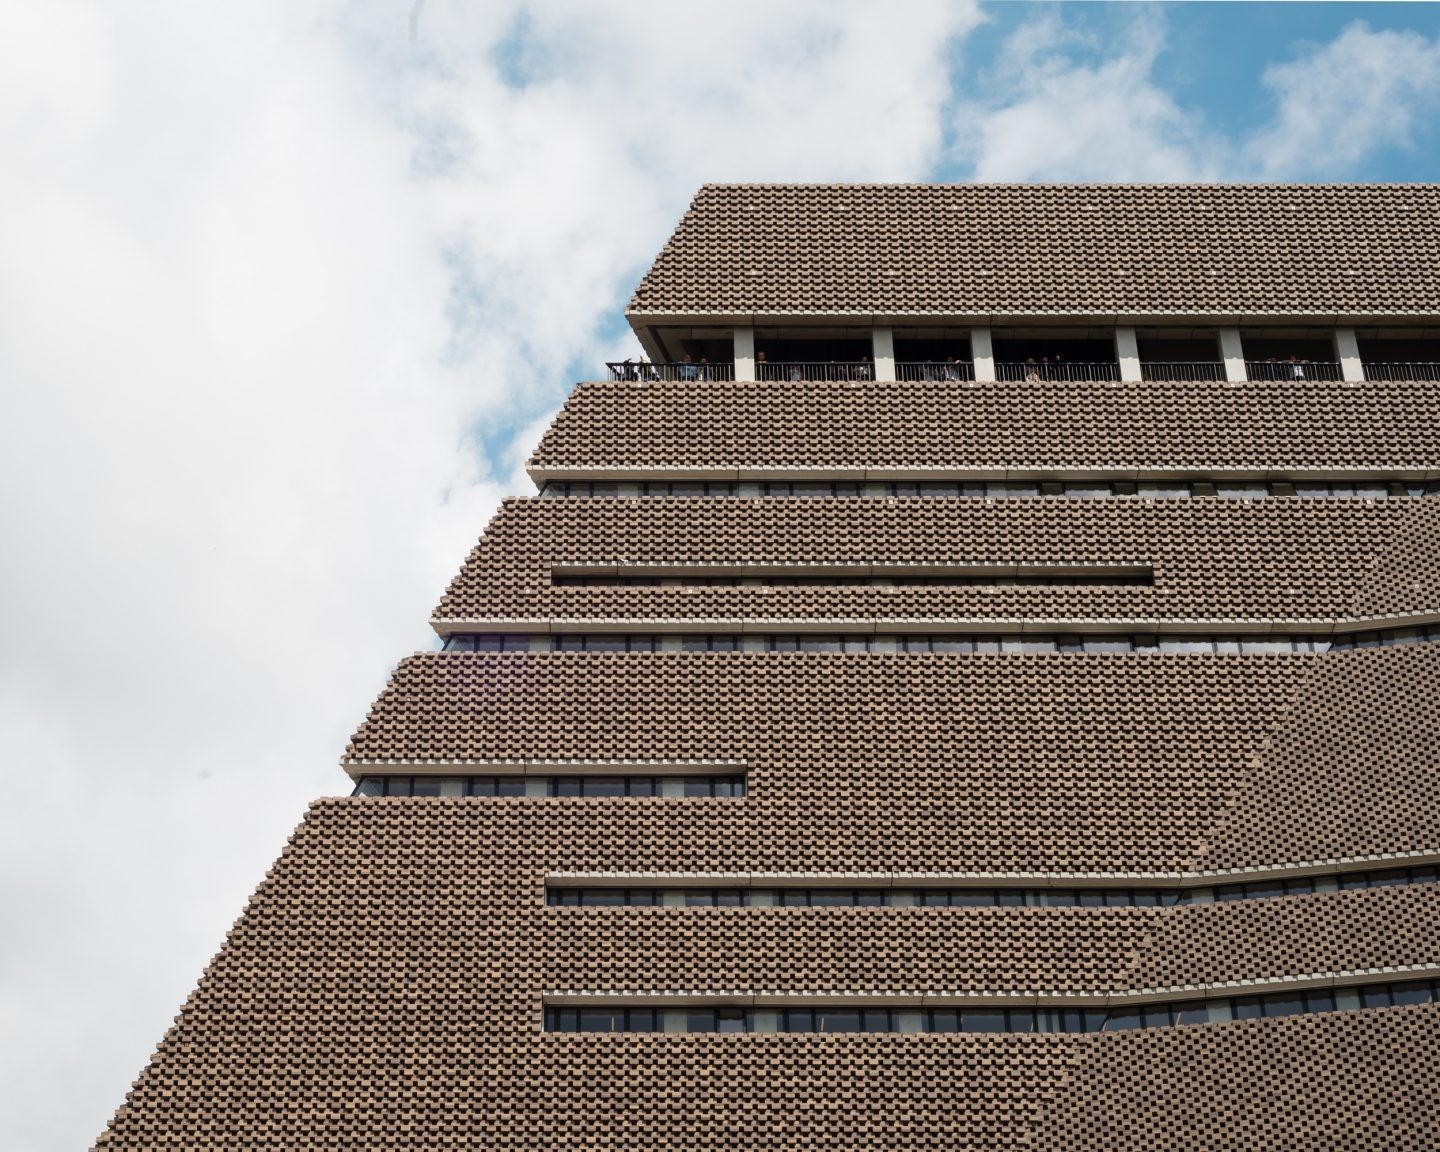 Tate Modern Switch House by Herzog & de Meuron. Copyright Jim Stephenson 2016